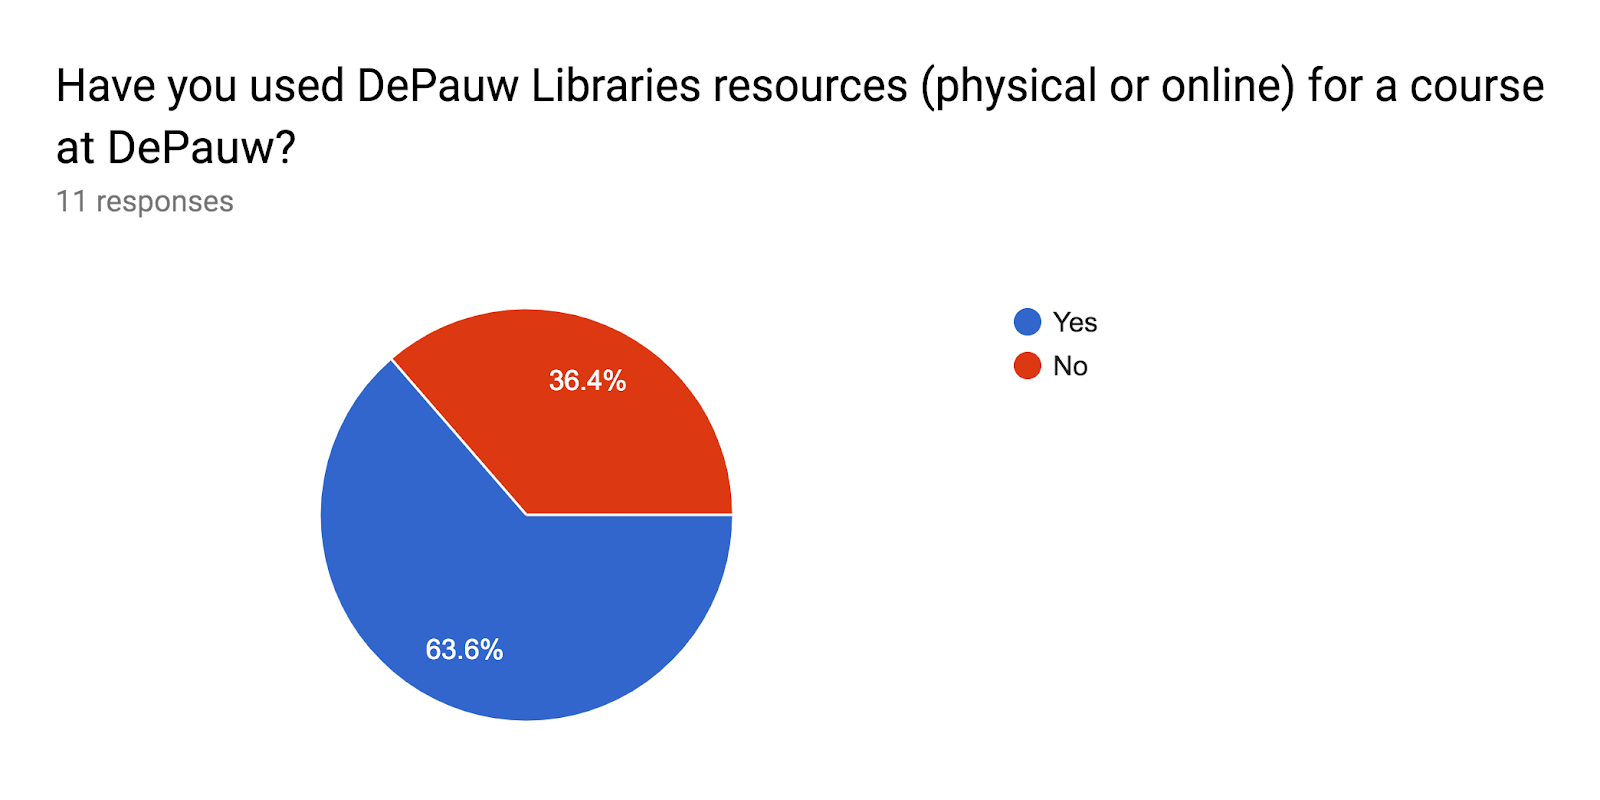 Forms response chart. Question title: Have you used DePauw Libraries resources (physical or online) for a course at DePauw?. Number of responses: 11 responses.